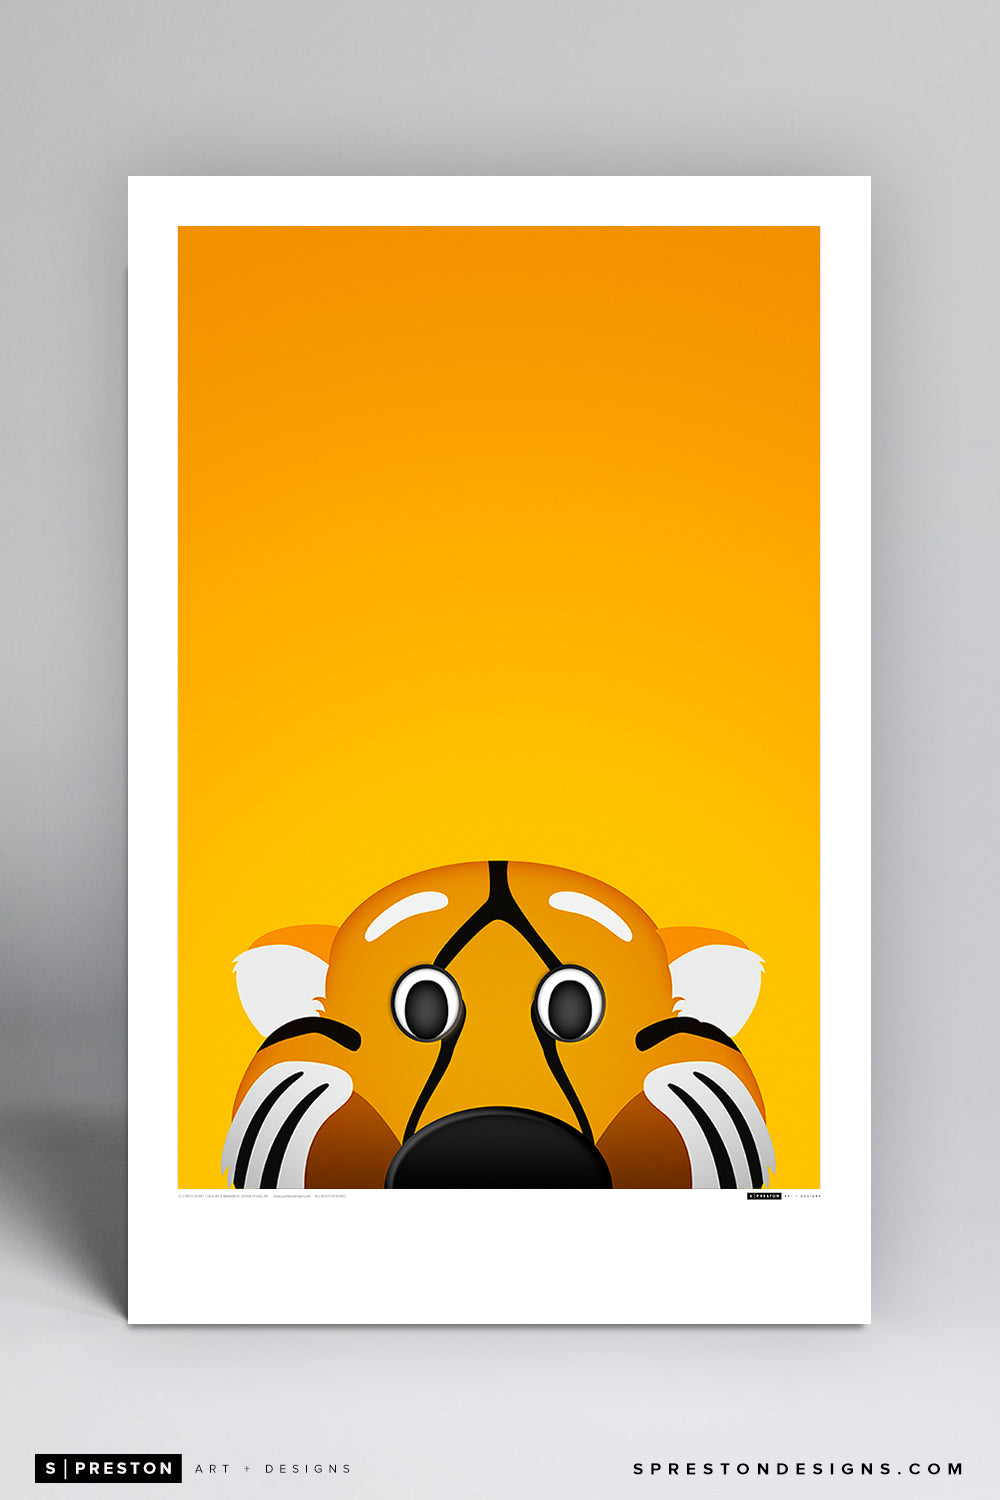 Minimalist Truman the Tiger - Mizzou Art Poster Art Poster - University of Missouri - S. Preston Art + Designs